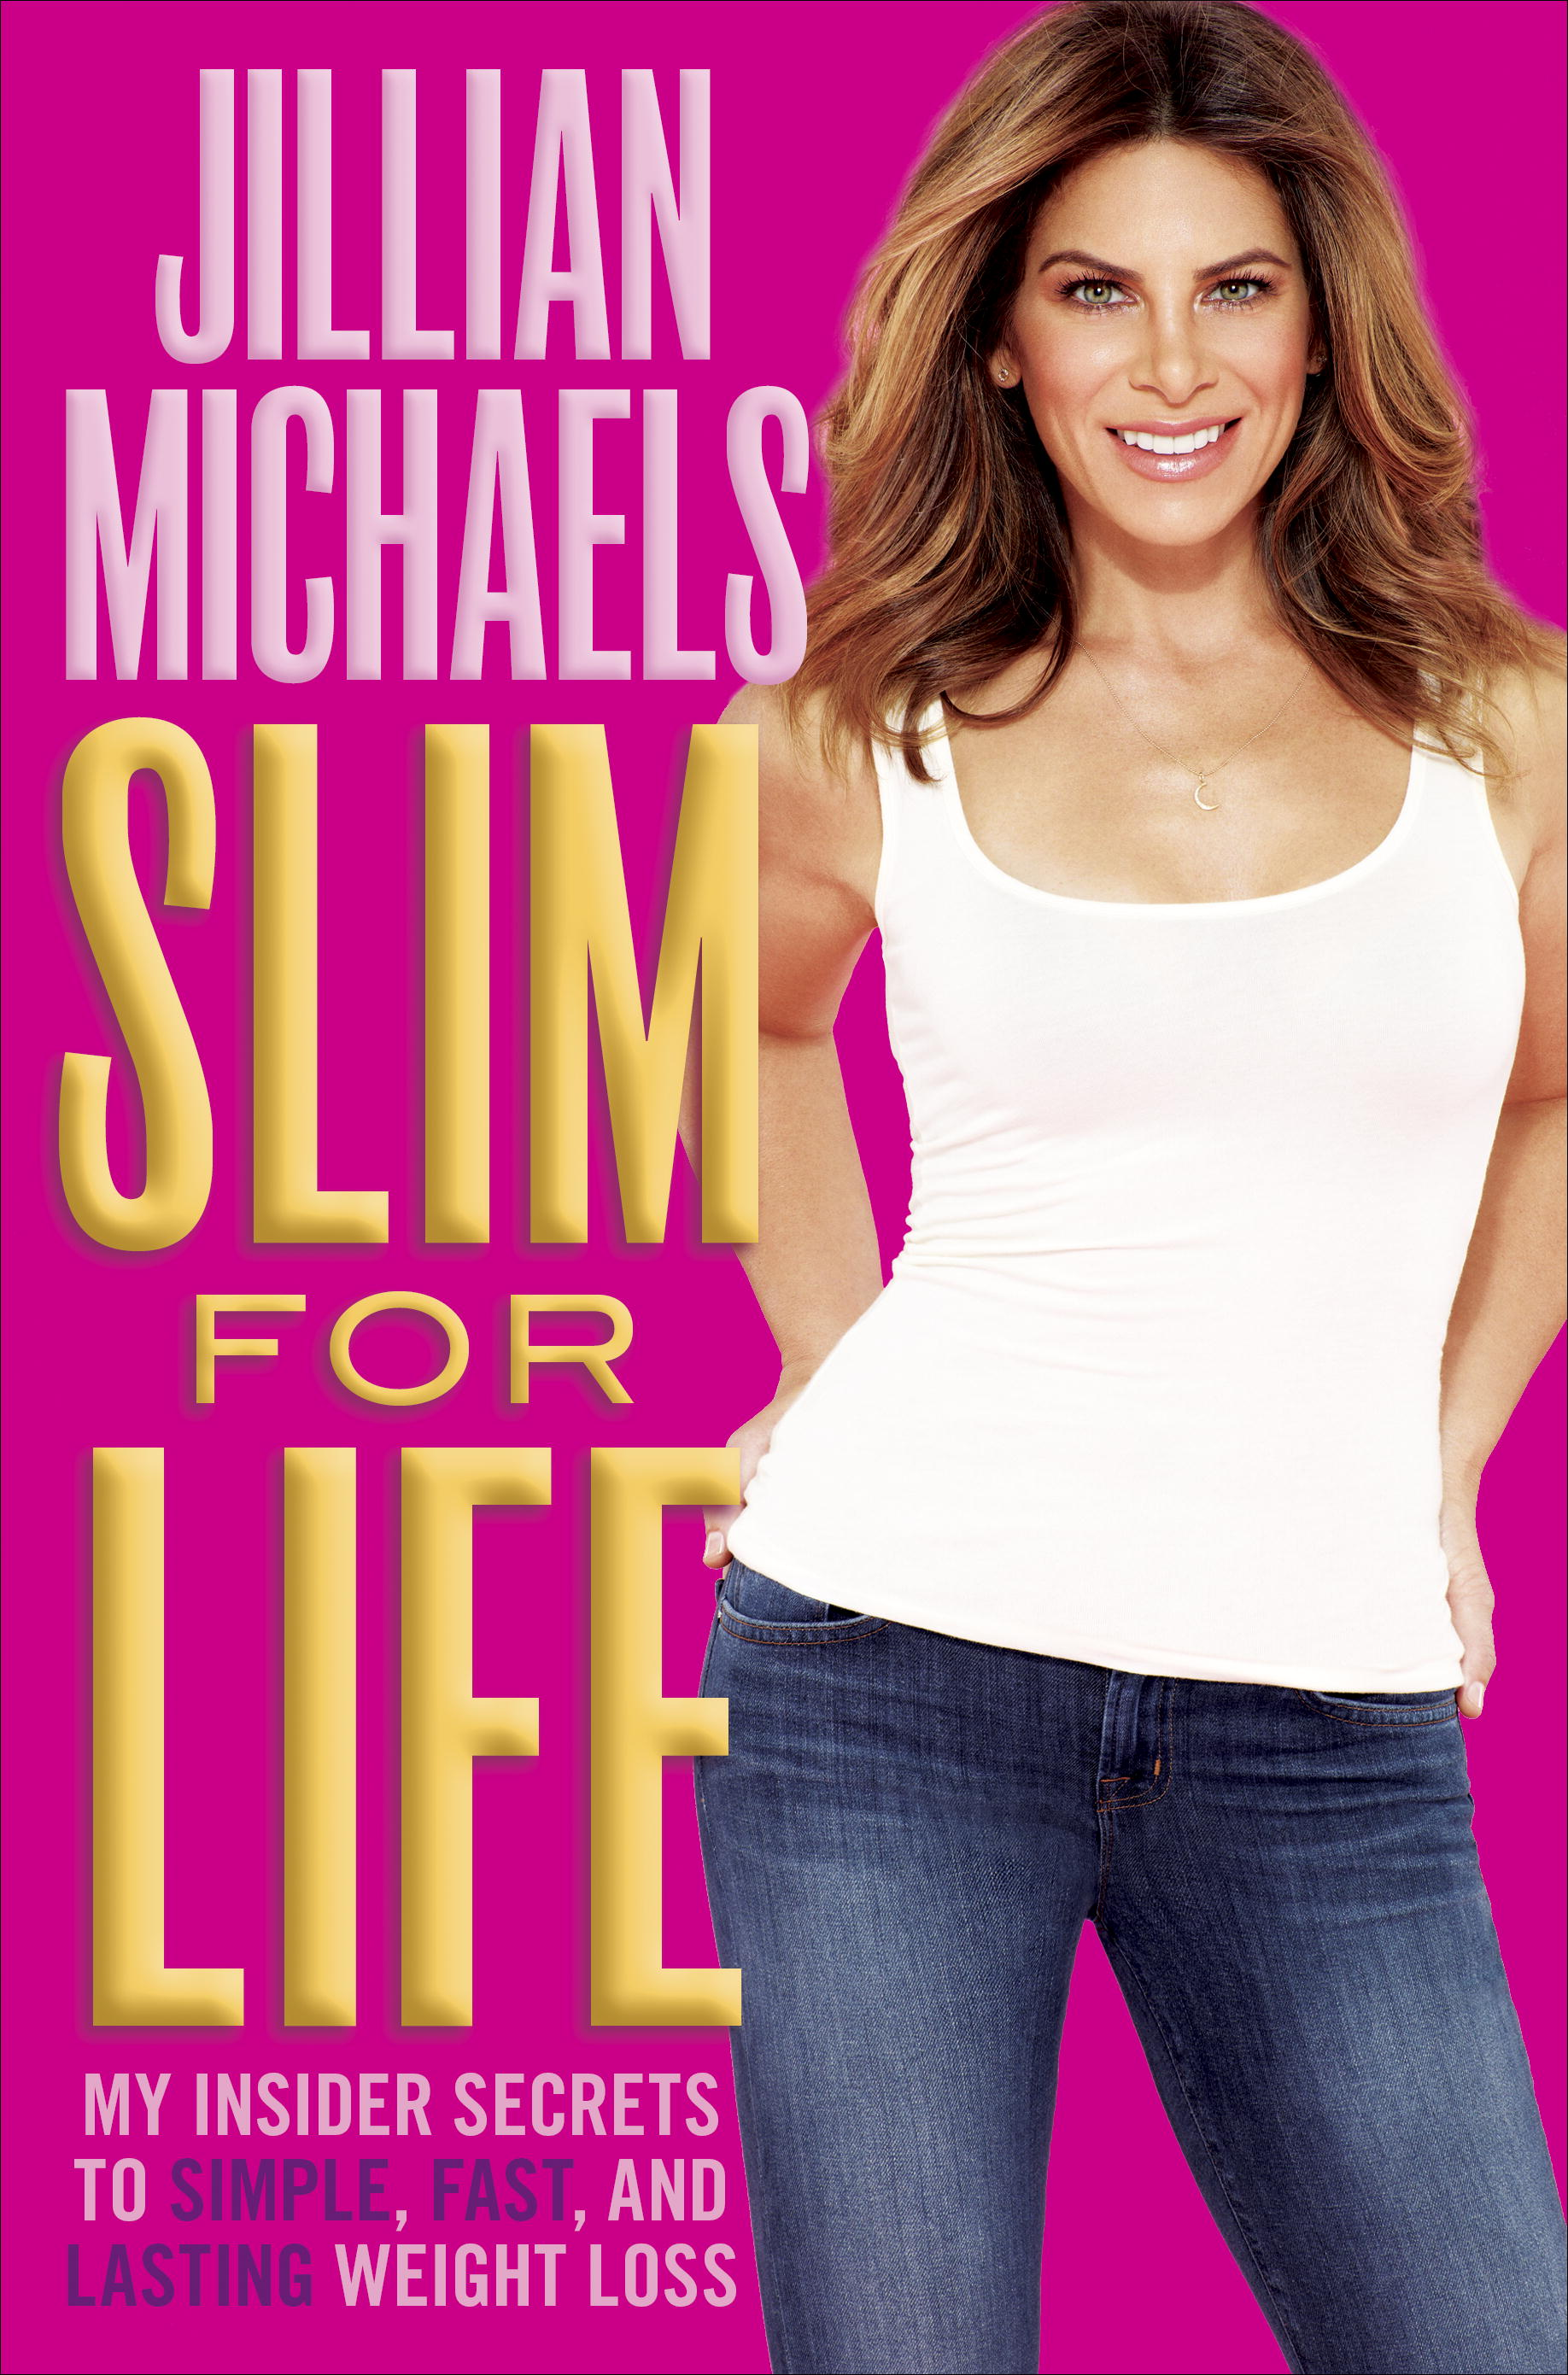 Jillian Michales new book